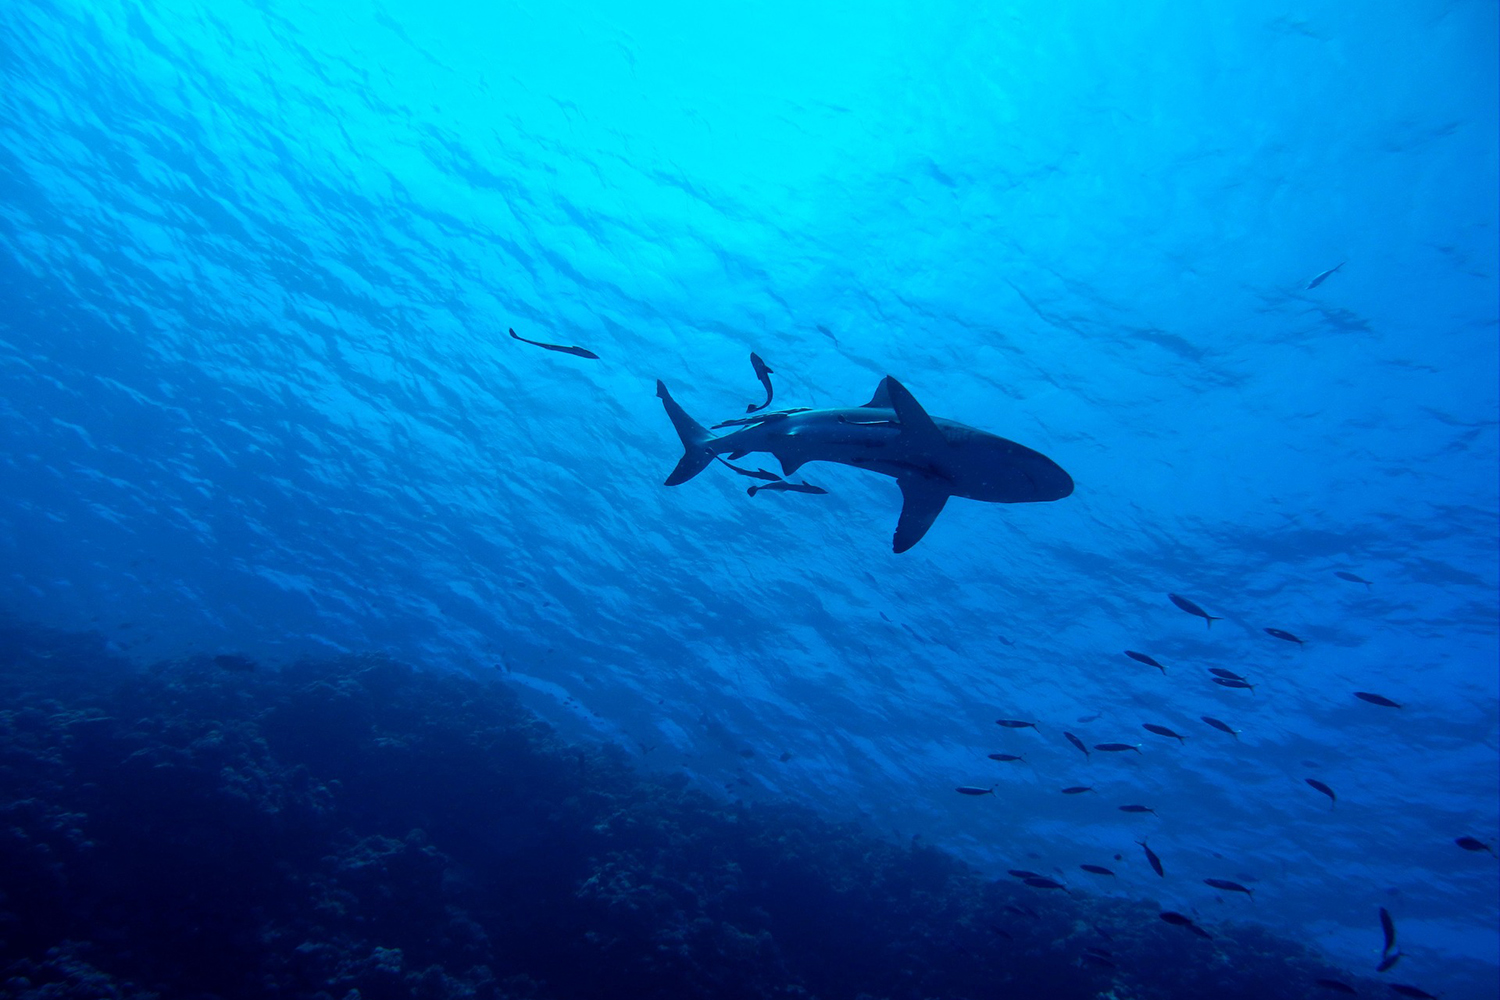 Sharks R Cool - Don't you think?